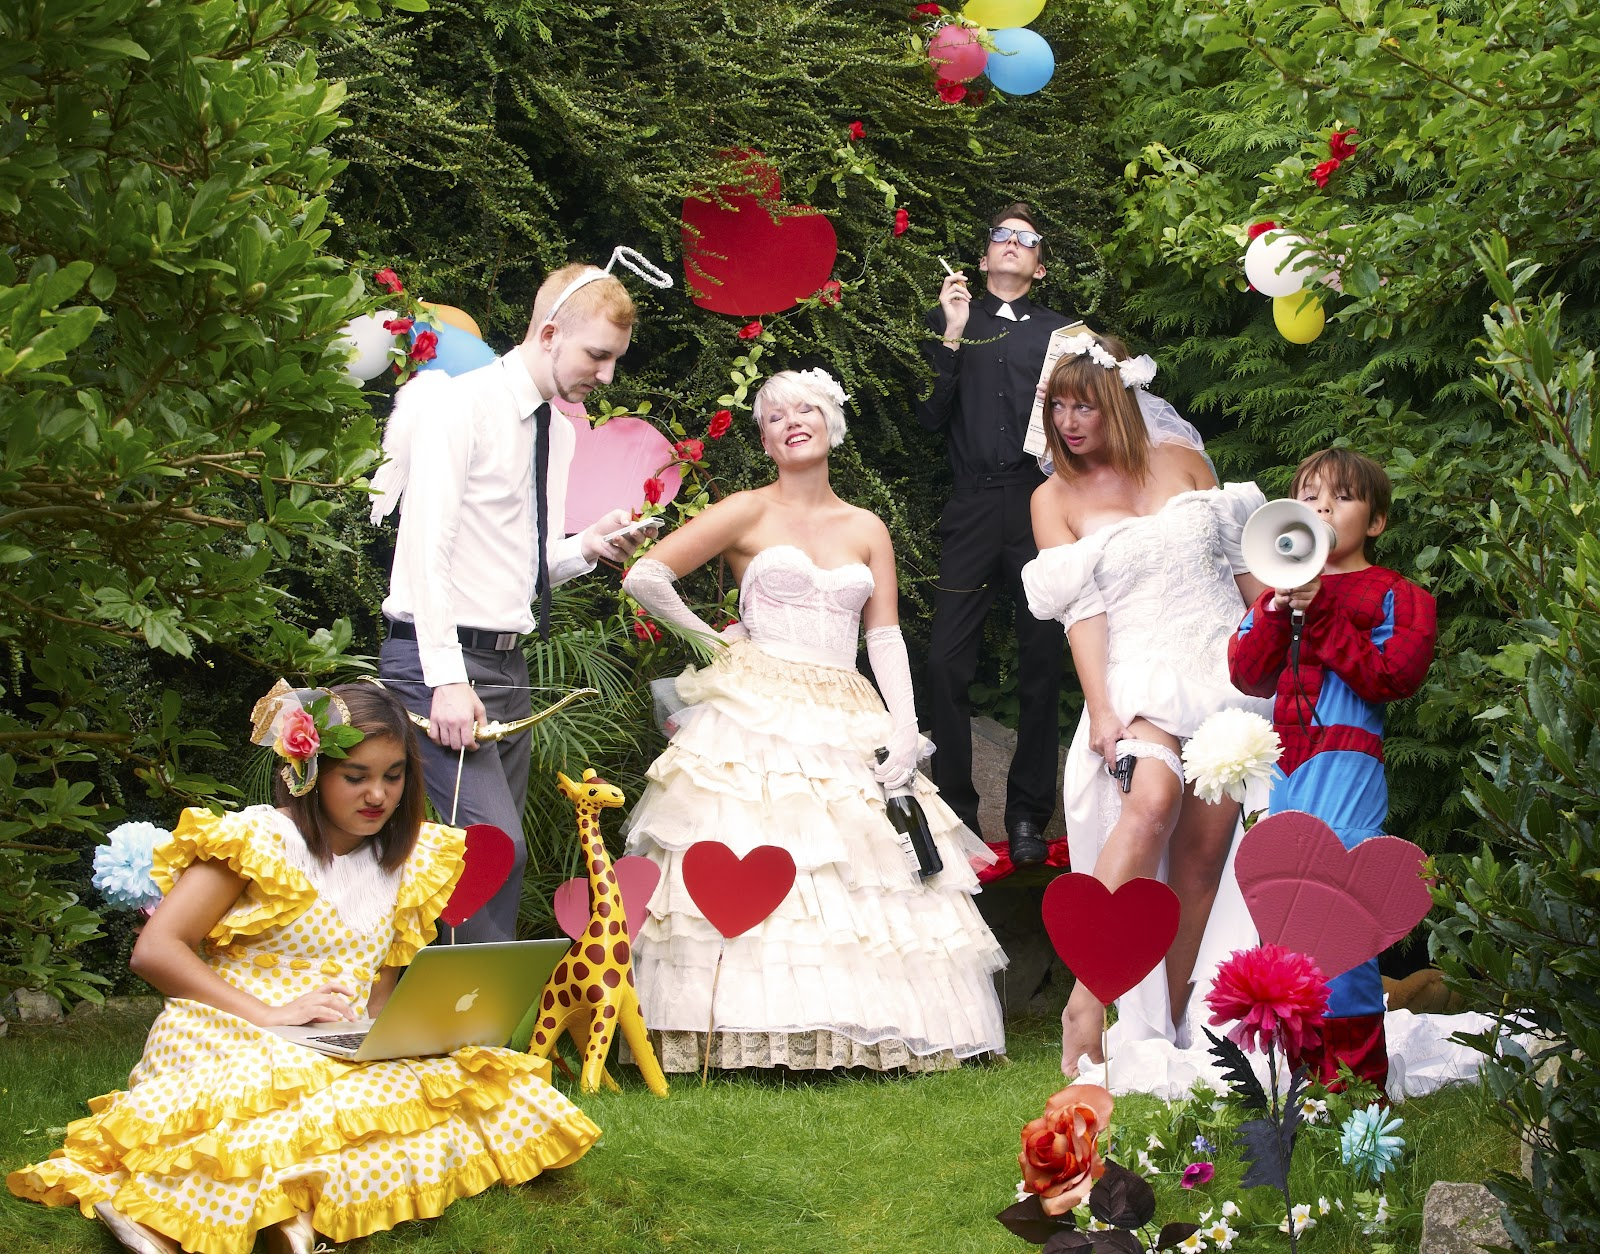 KITSCH WEDDING